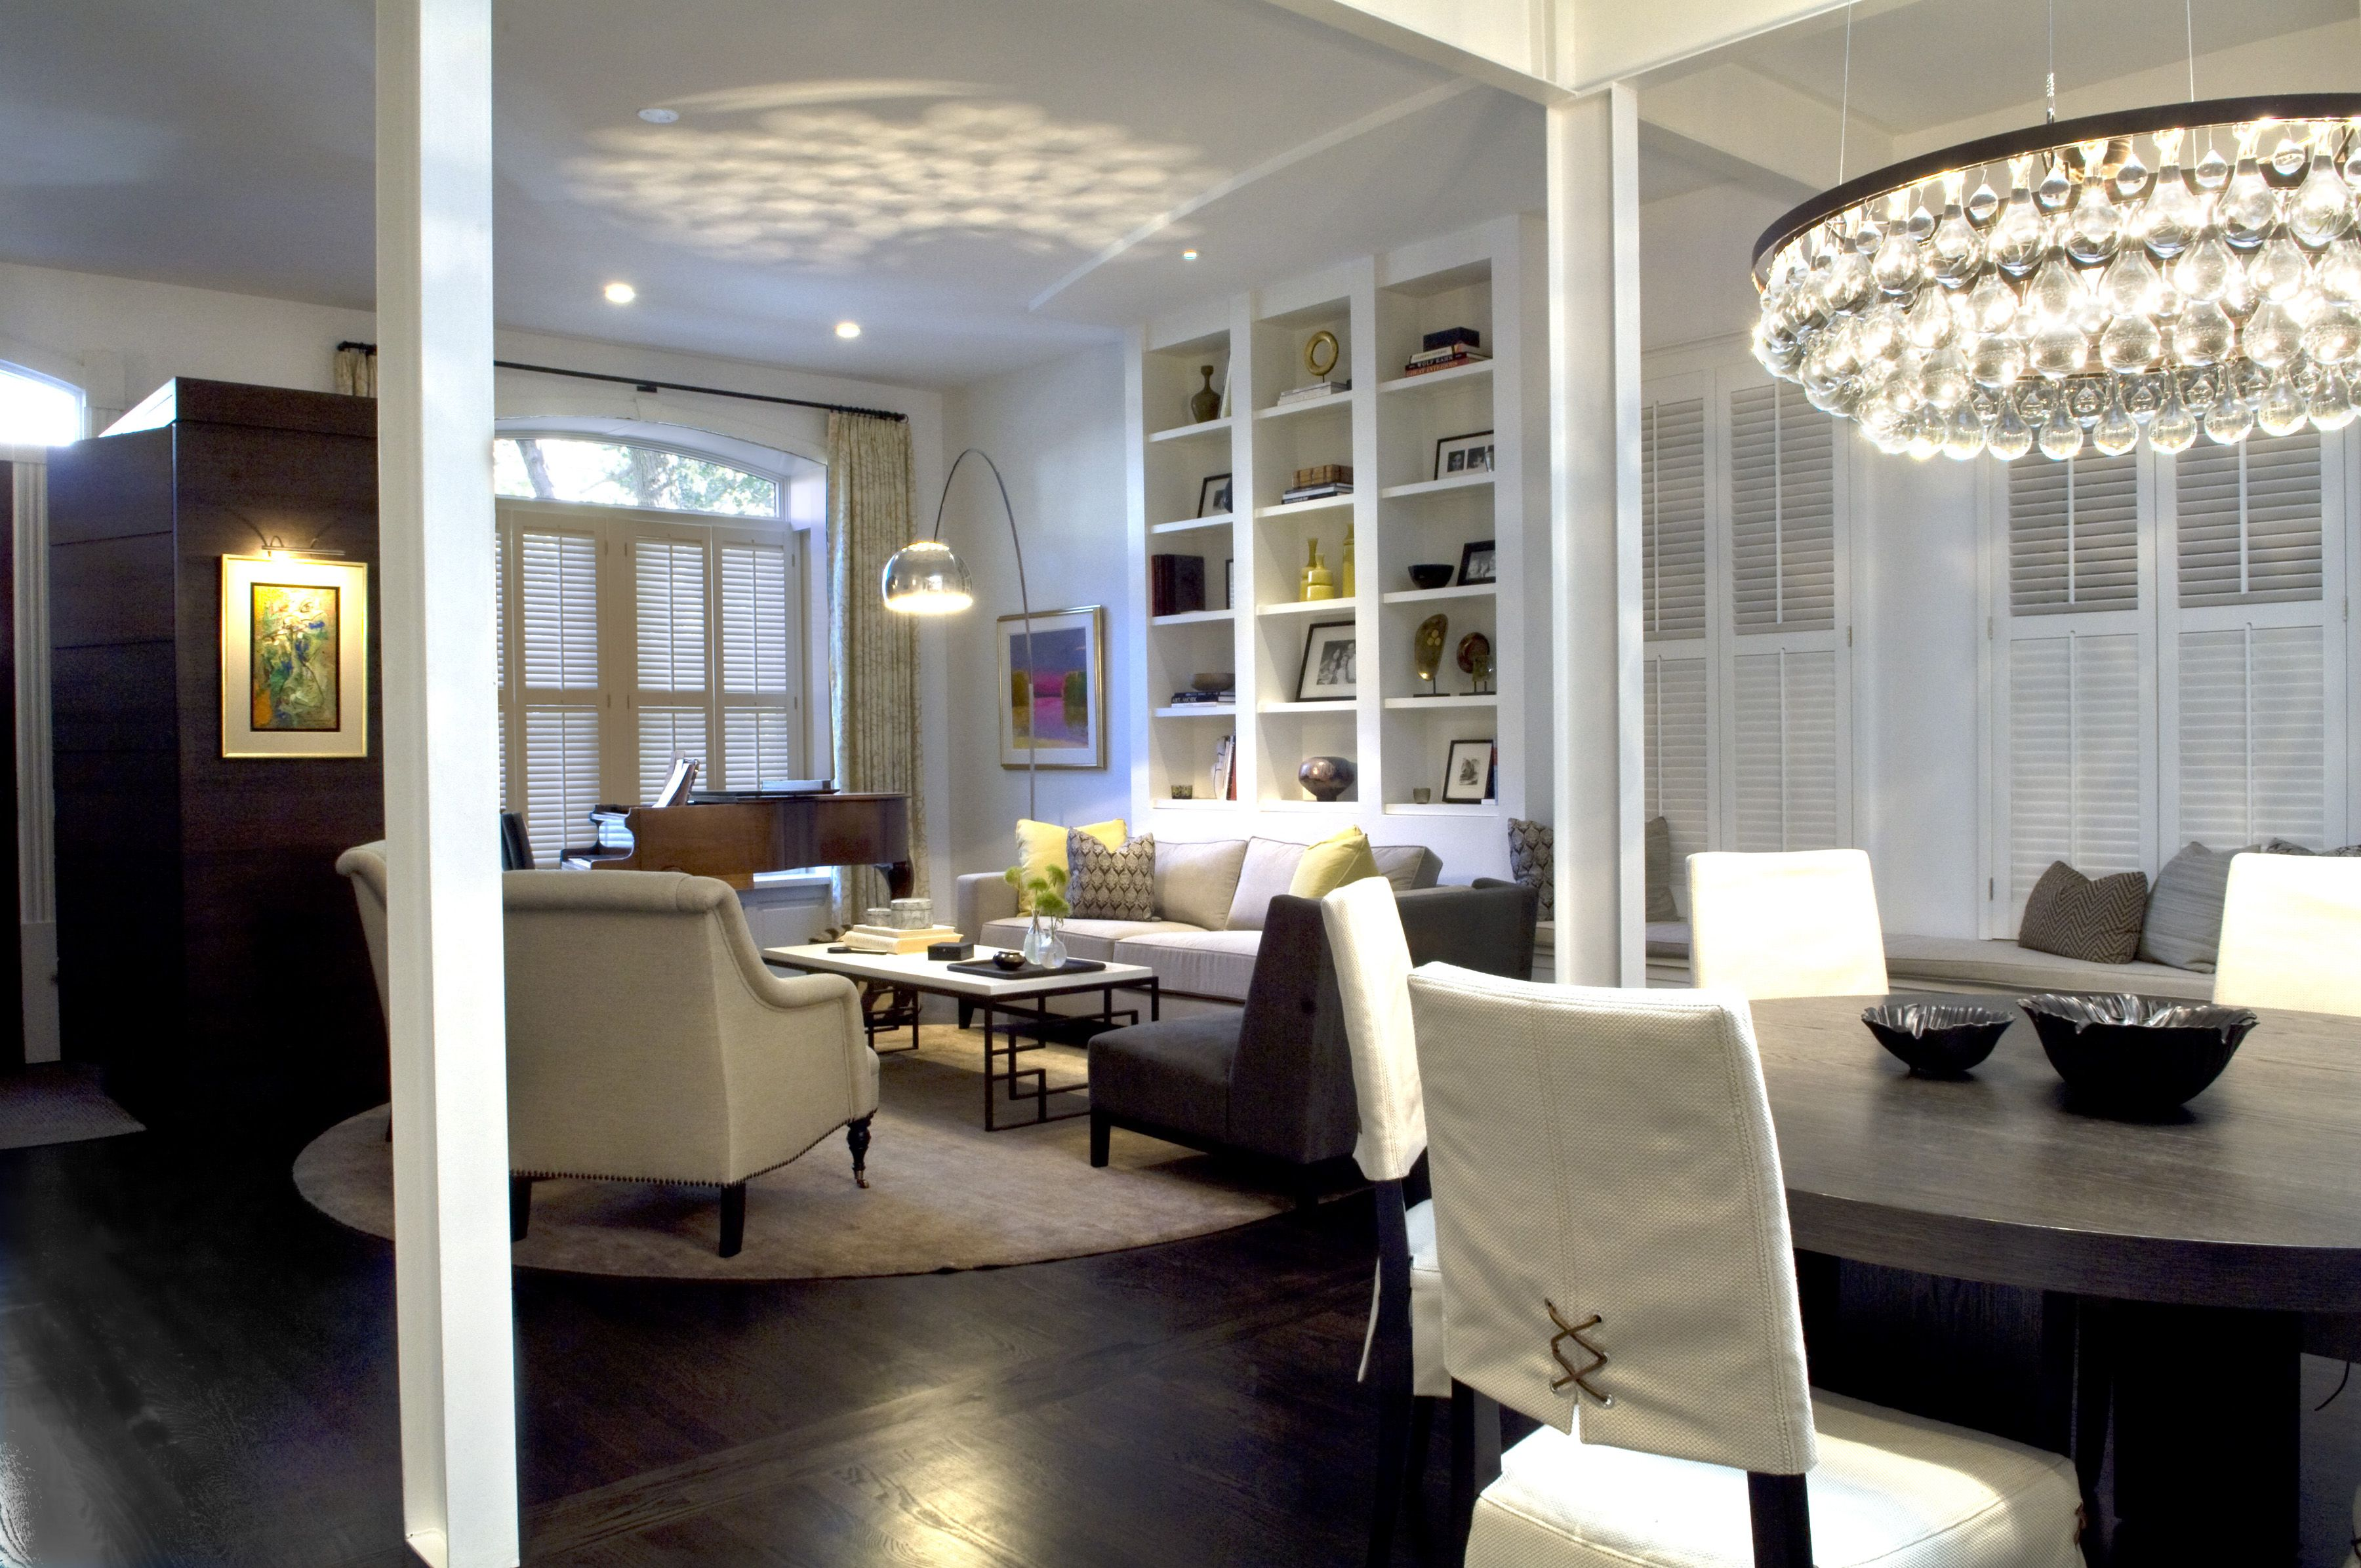 FAMILY/ DINING w/ Wells Fox Interiors